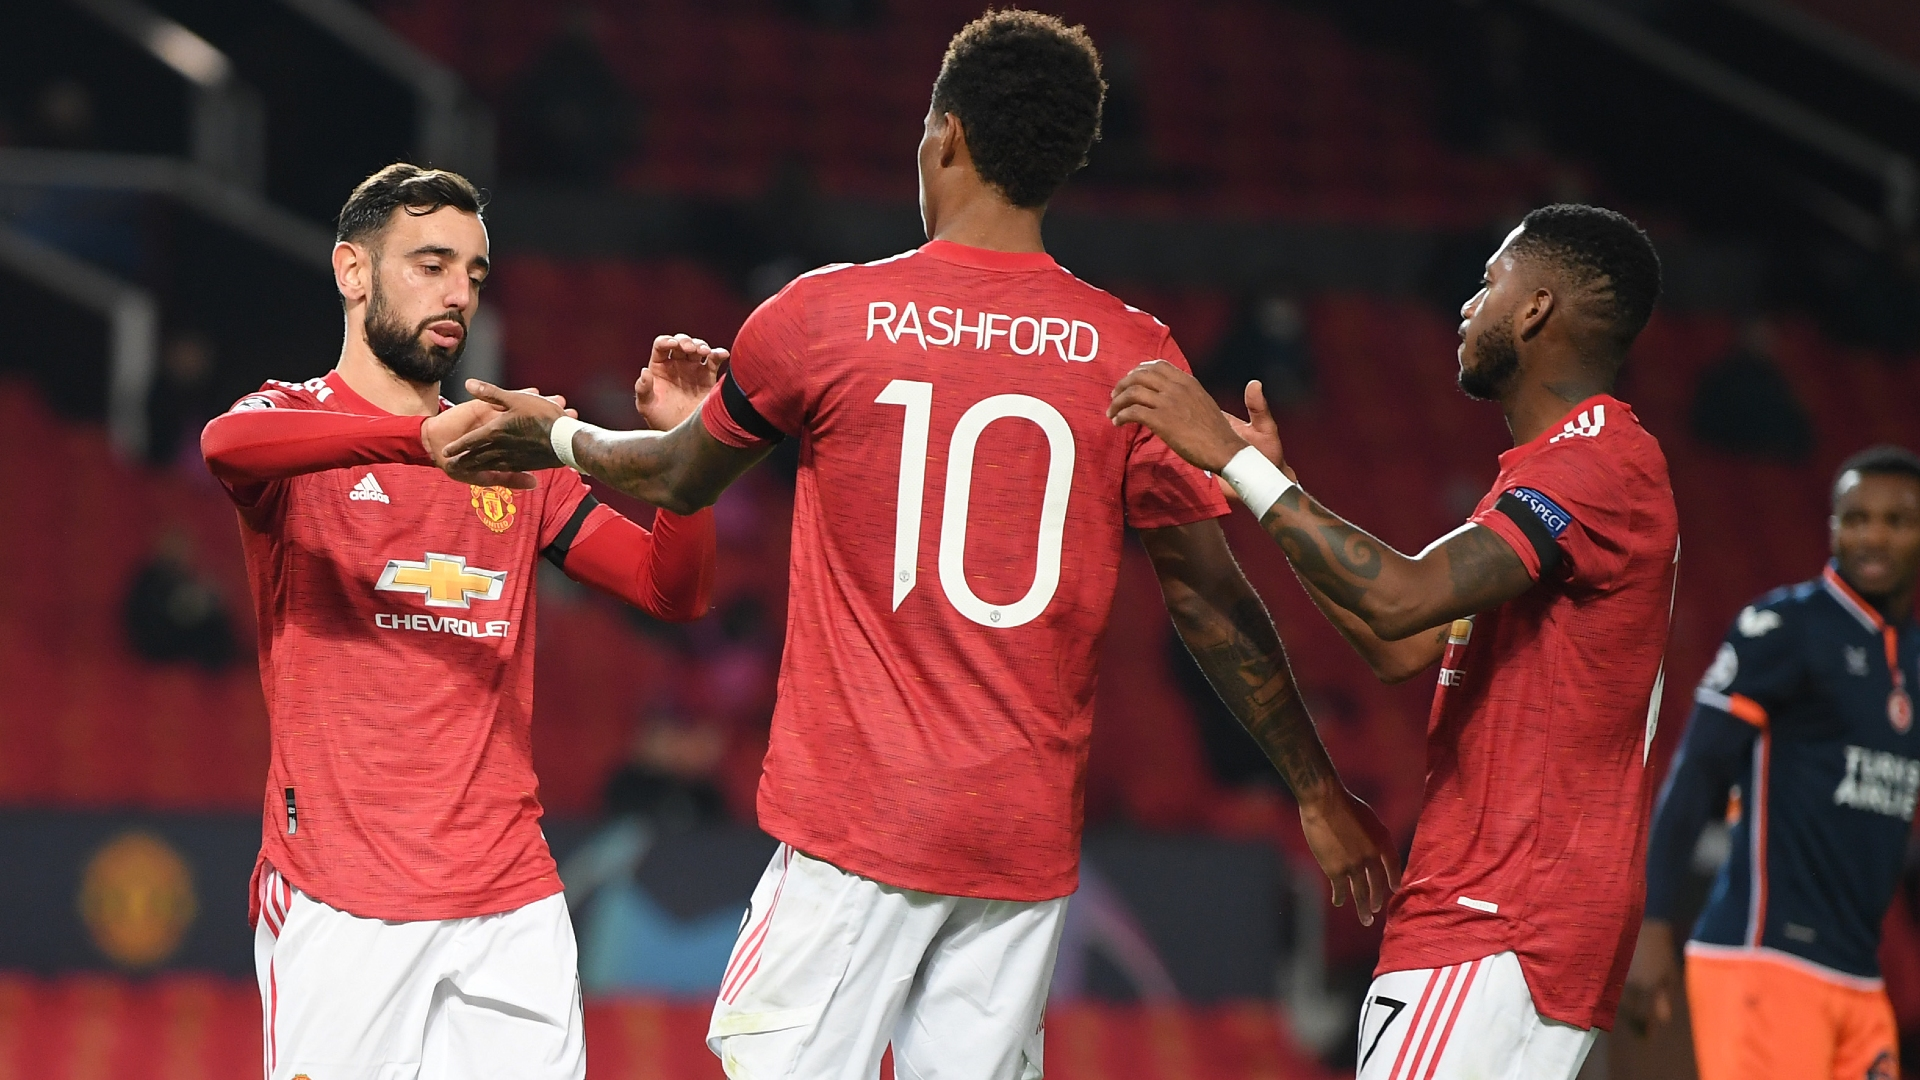 Rashford told to add muscle to limit injury.